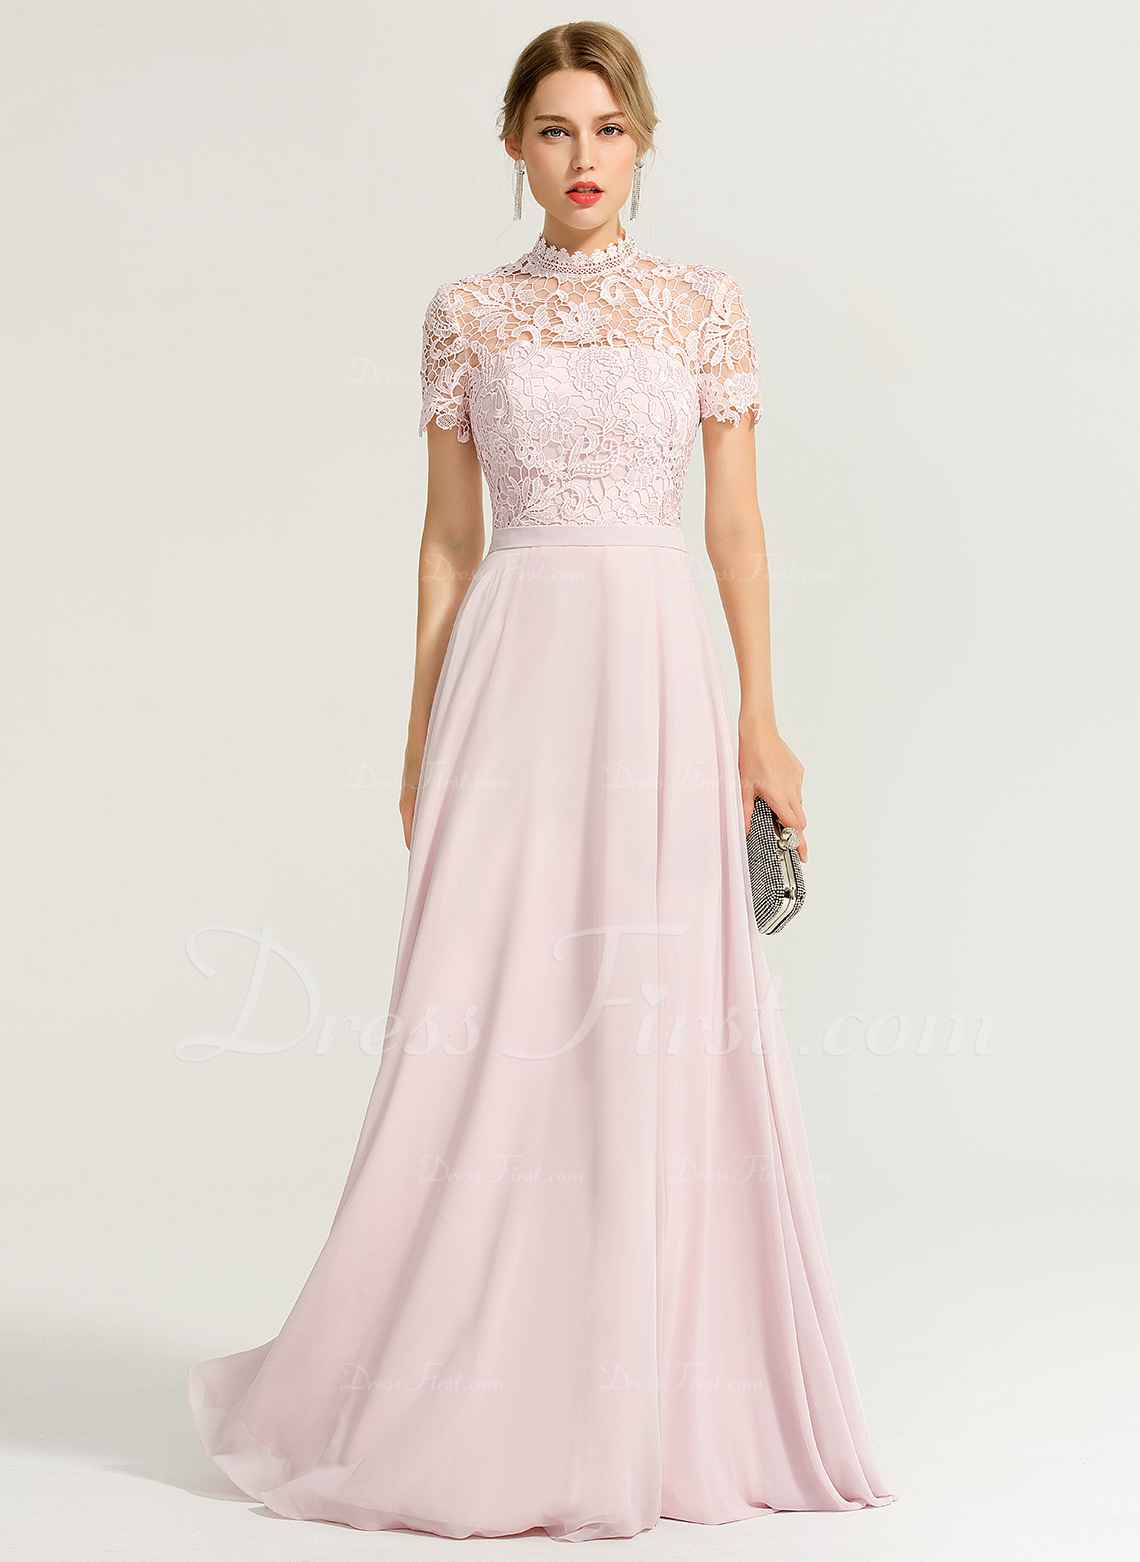 30671a5375dff Prom Dresses; #186892. Loading zoom. Loading. Color: As Picture. A-Line/Princess  High Neck Floor-Length ...